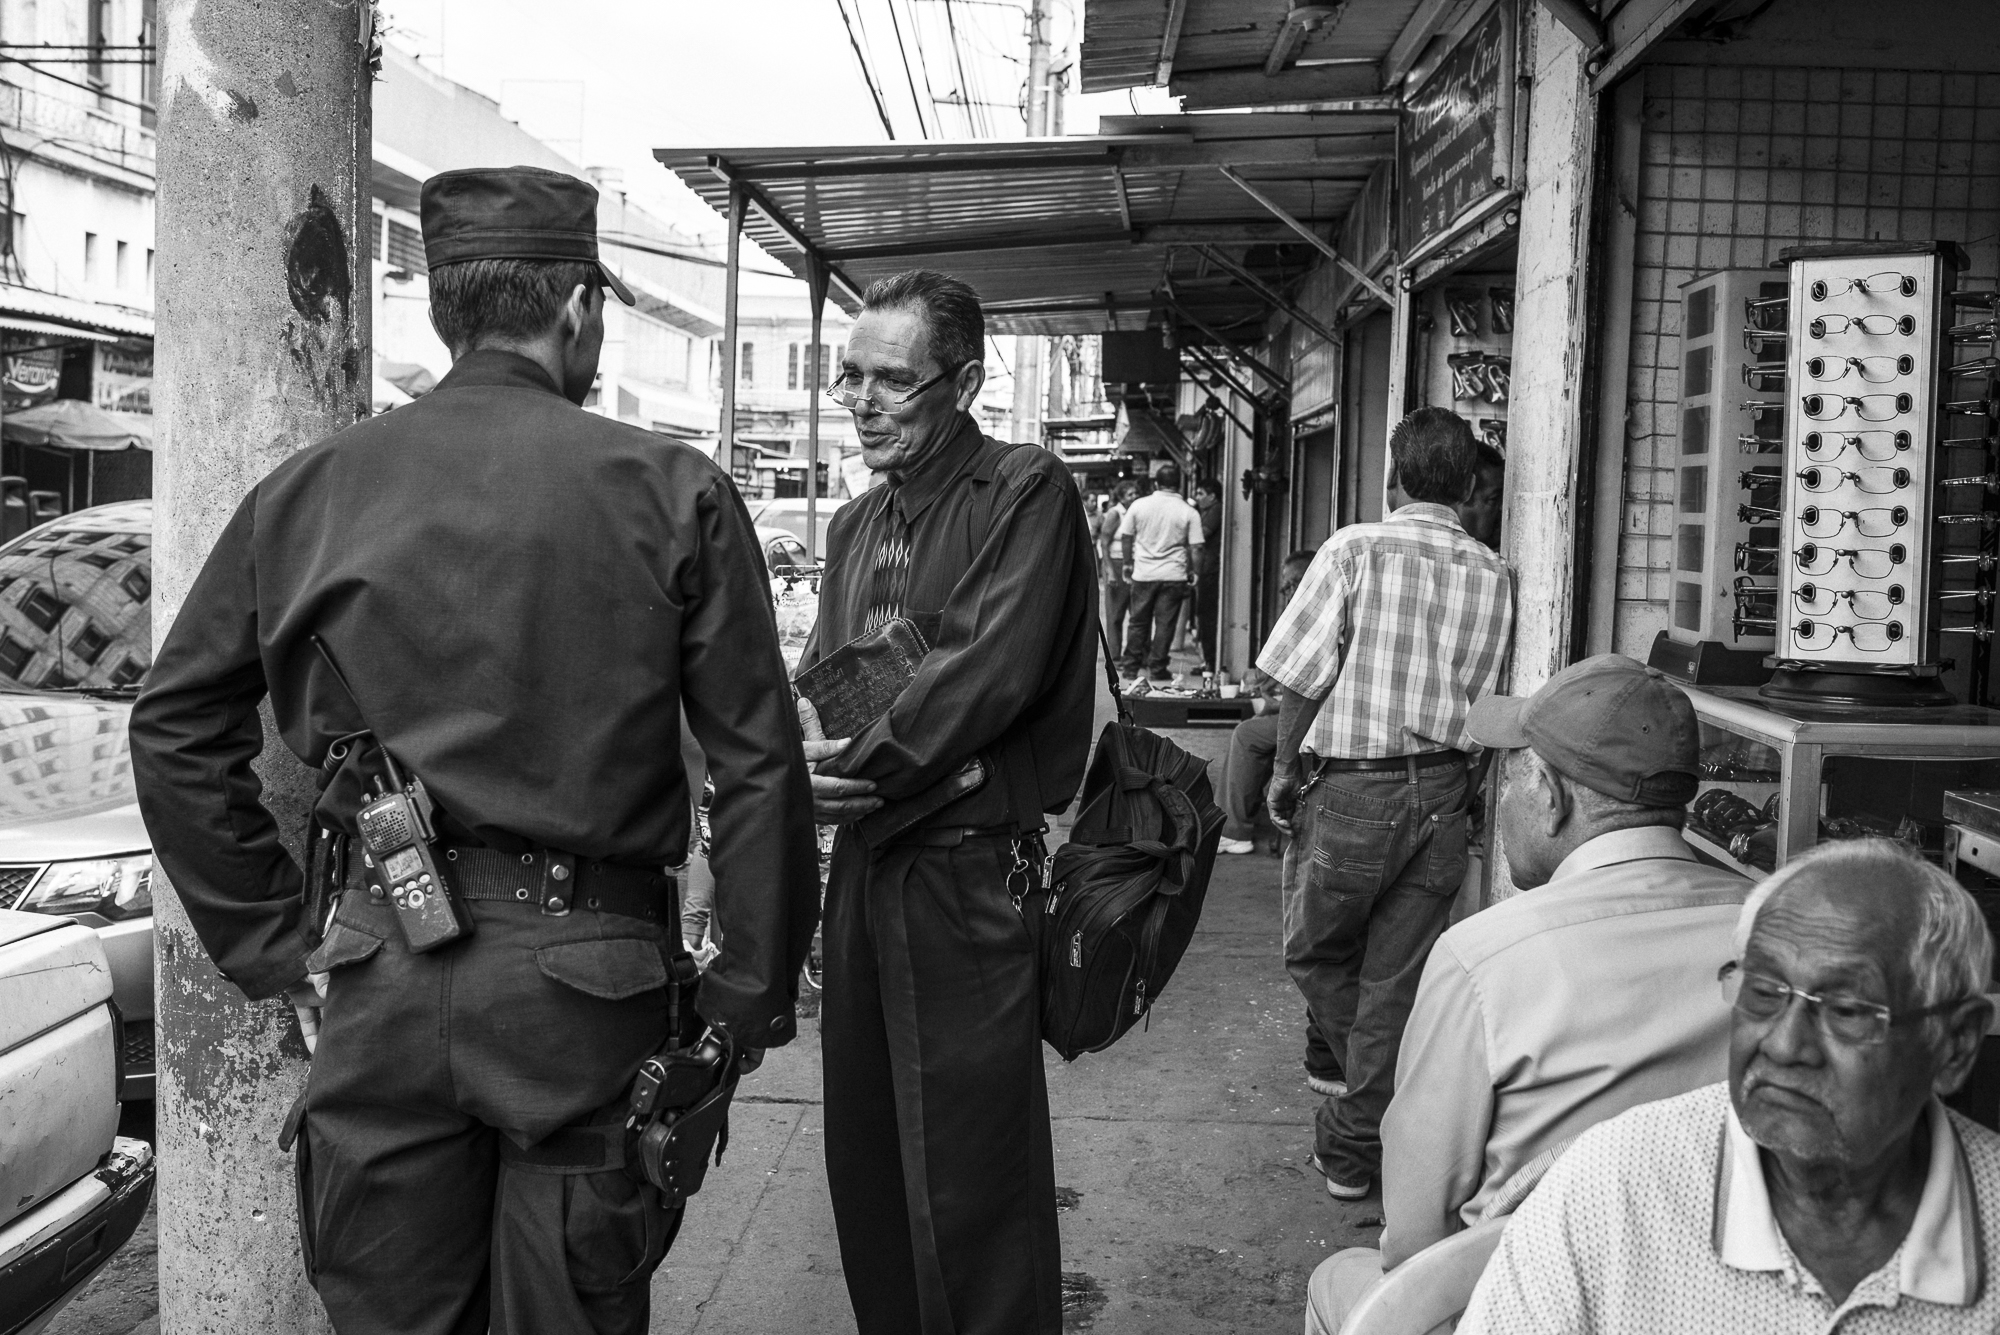 While he is going to the rehabilitation center where he will preach, Edwin meets and greets a policeman he knows in a street of San Salvador center.